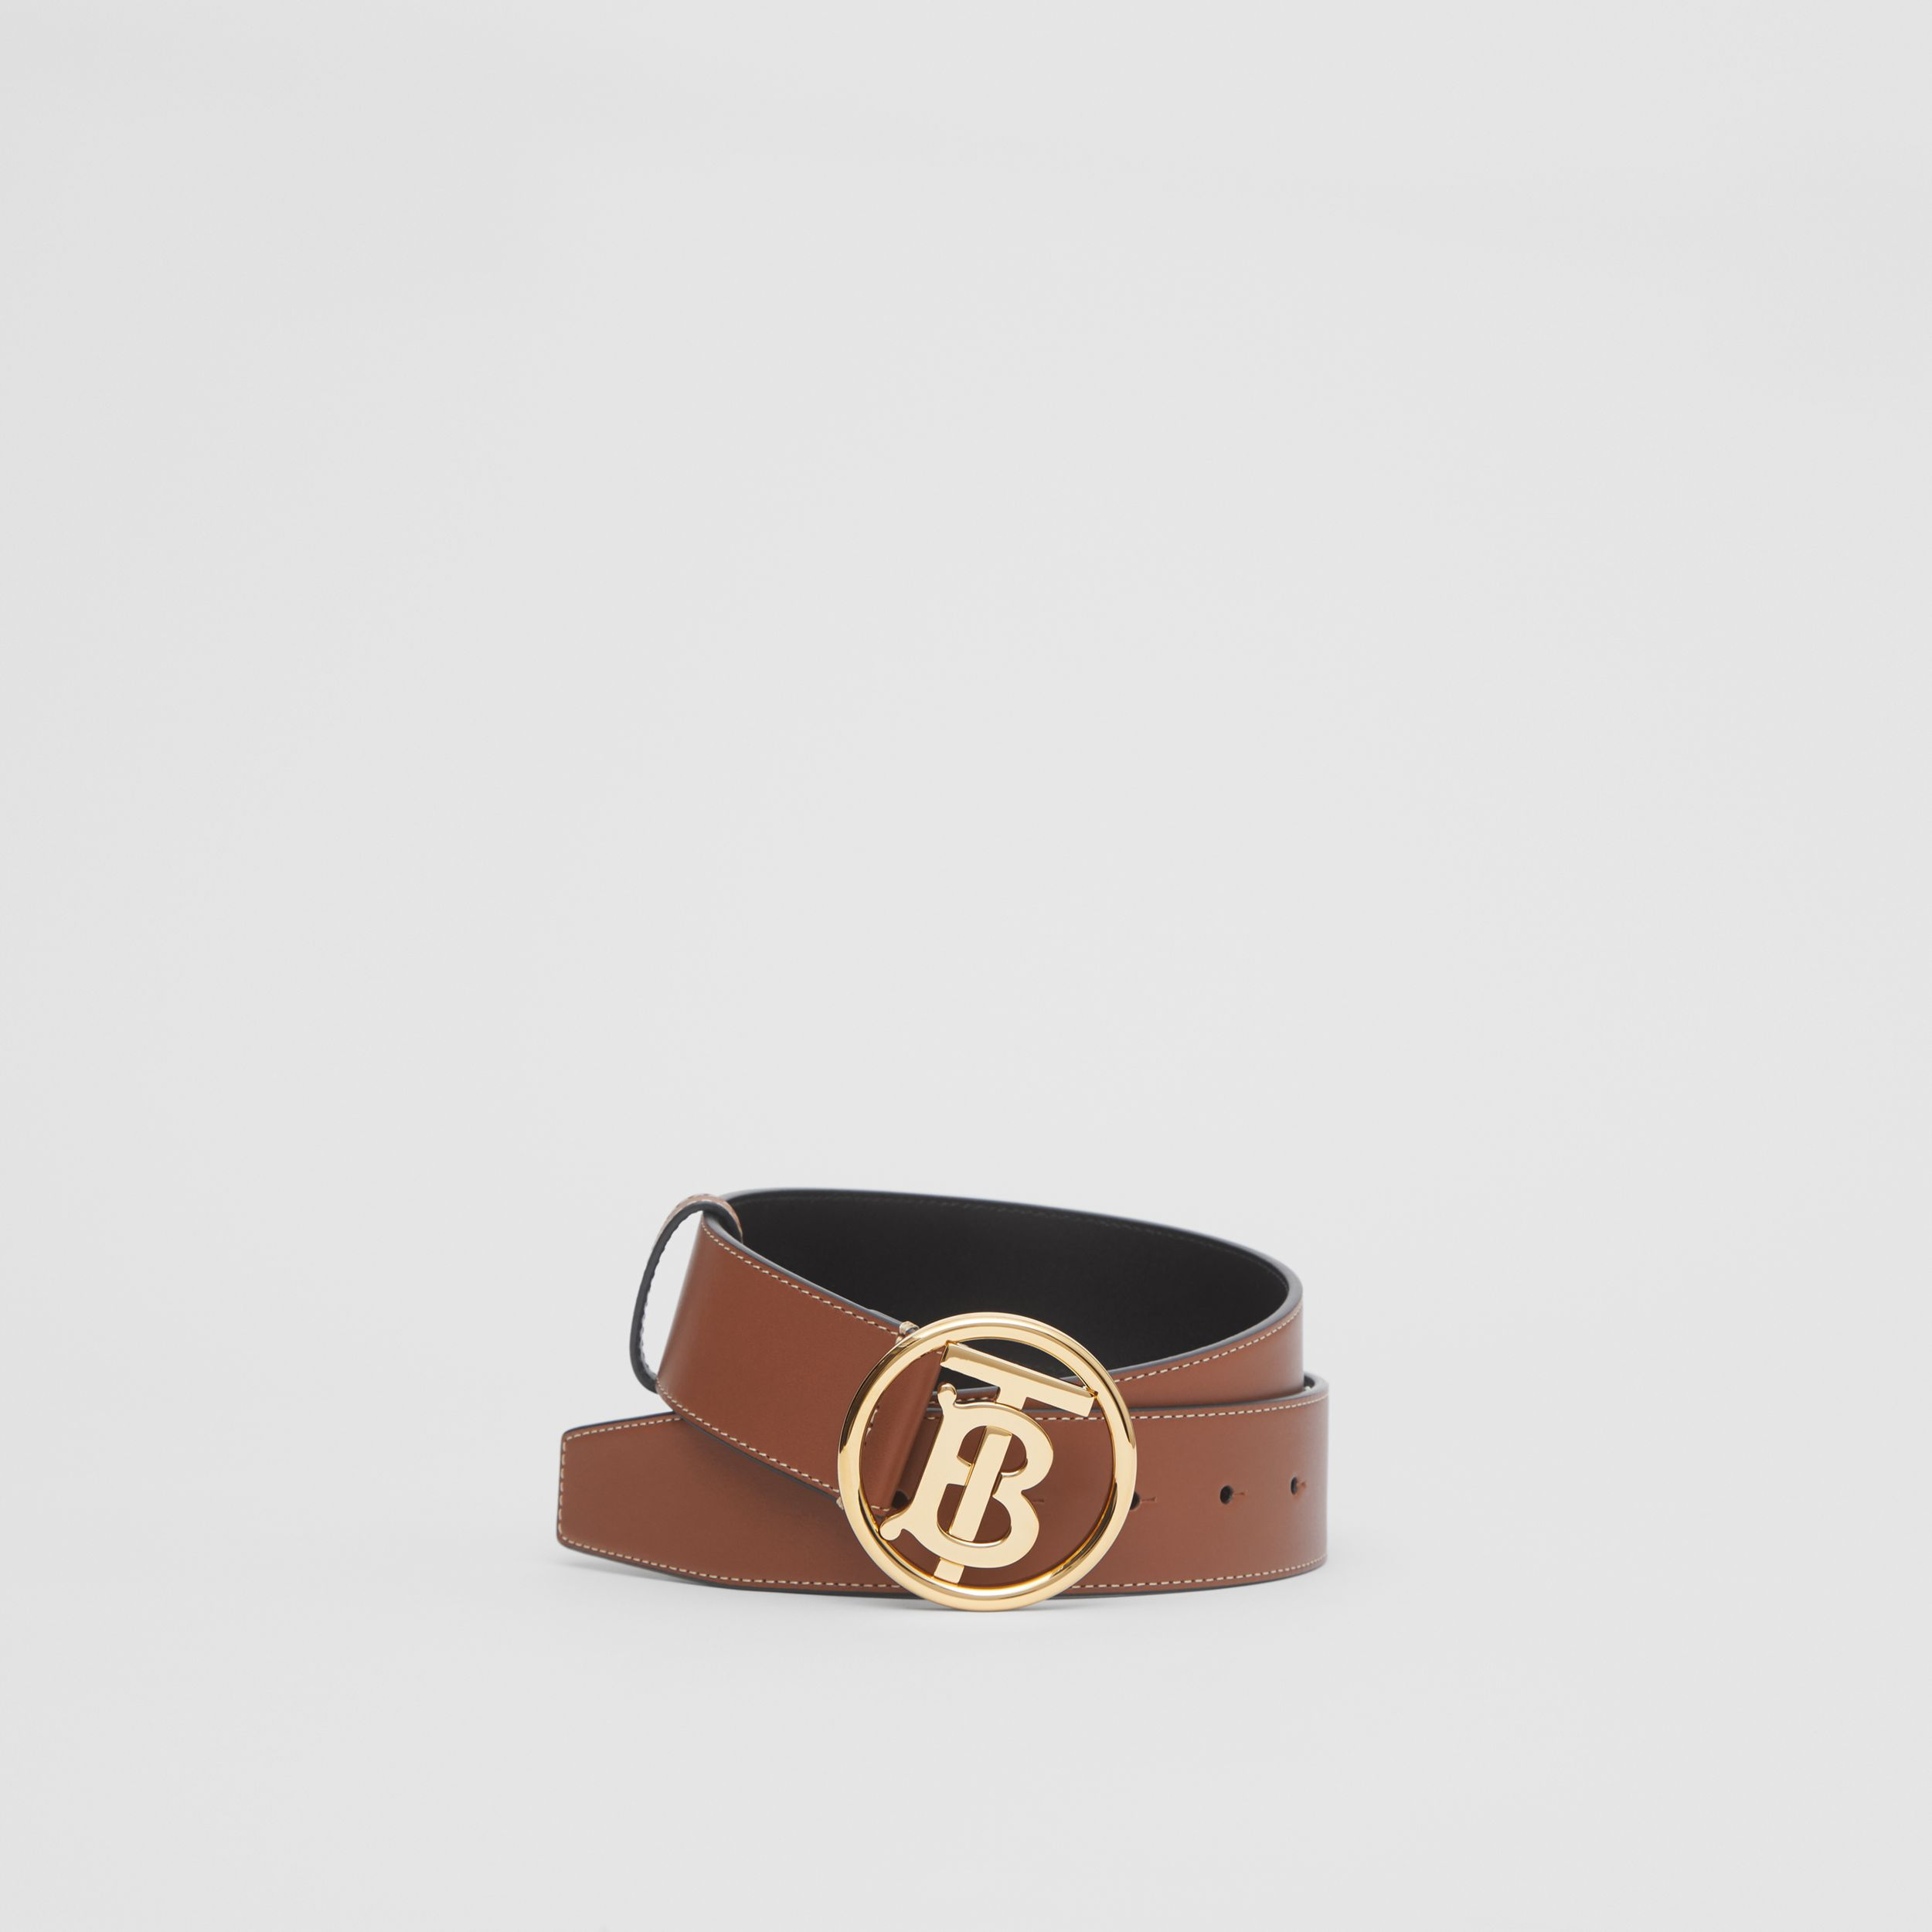 Monogram Motif Topstitched Leather Belt in Tan - Men | Burberry - 1